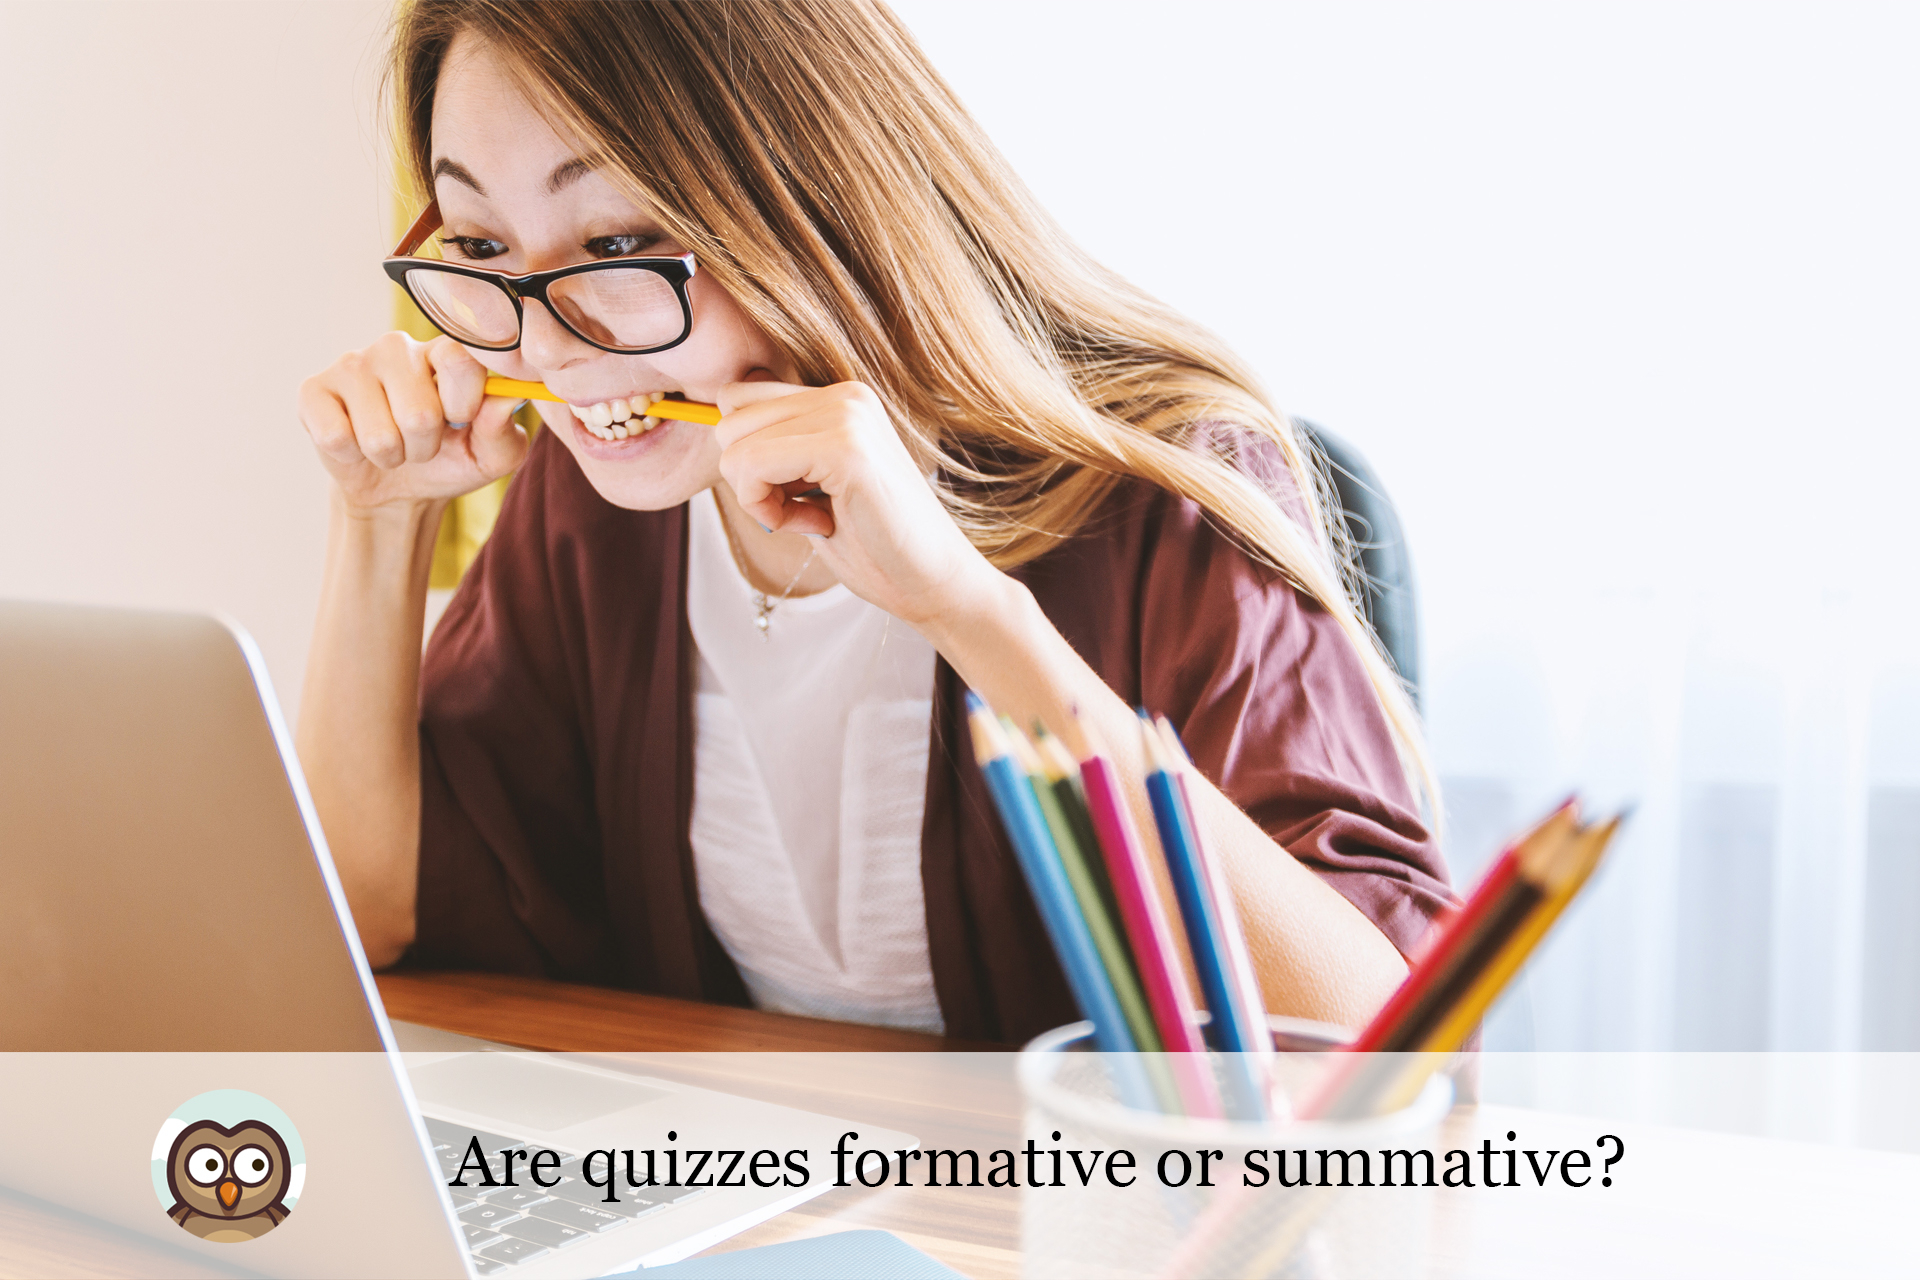 Are quizzes formative or summative?